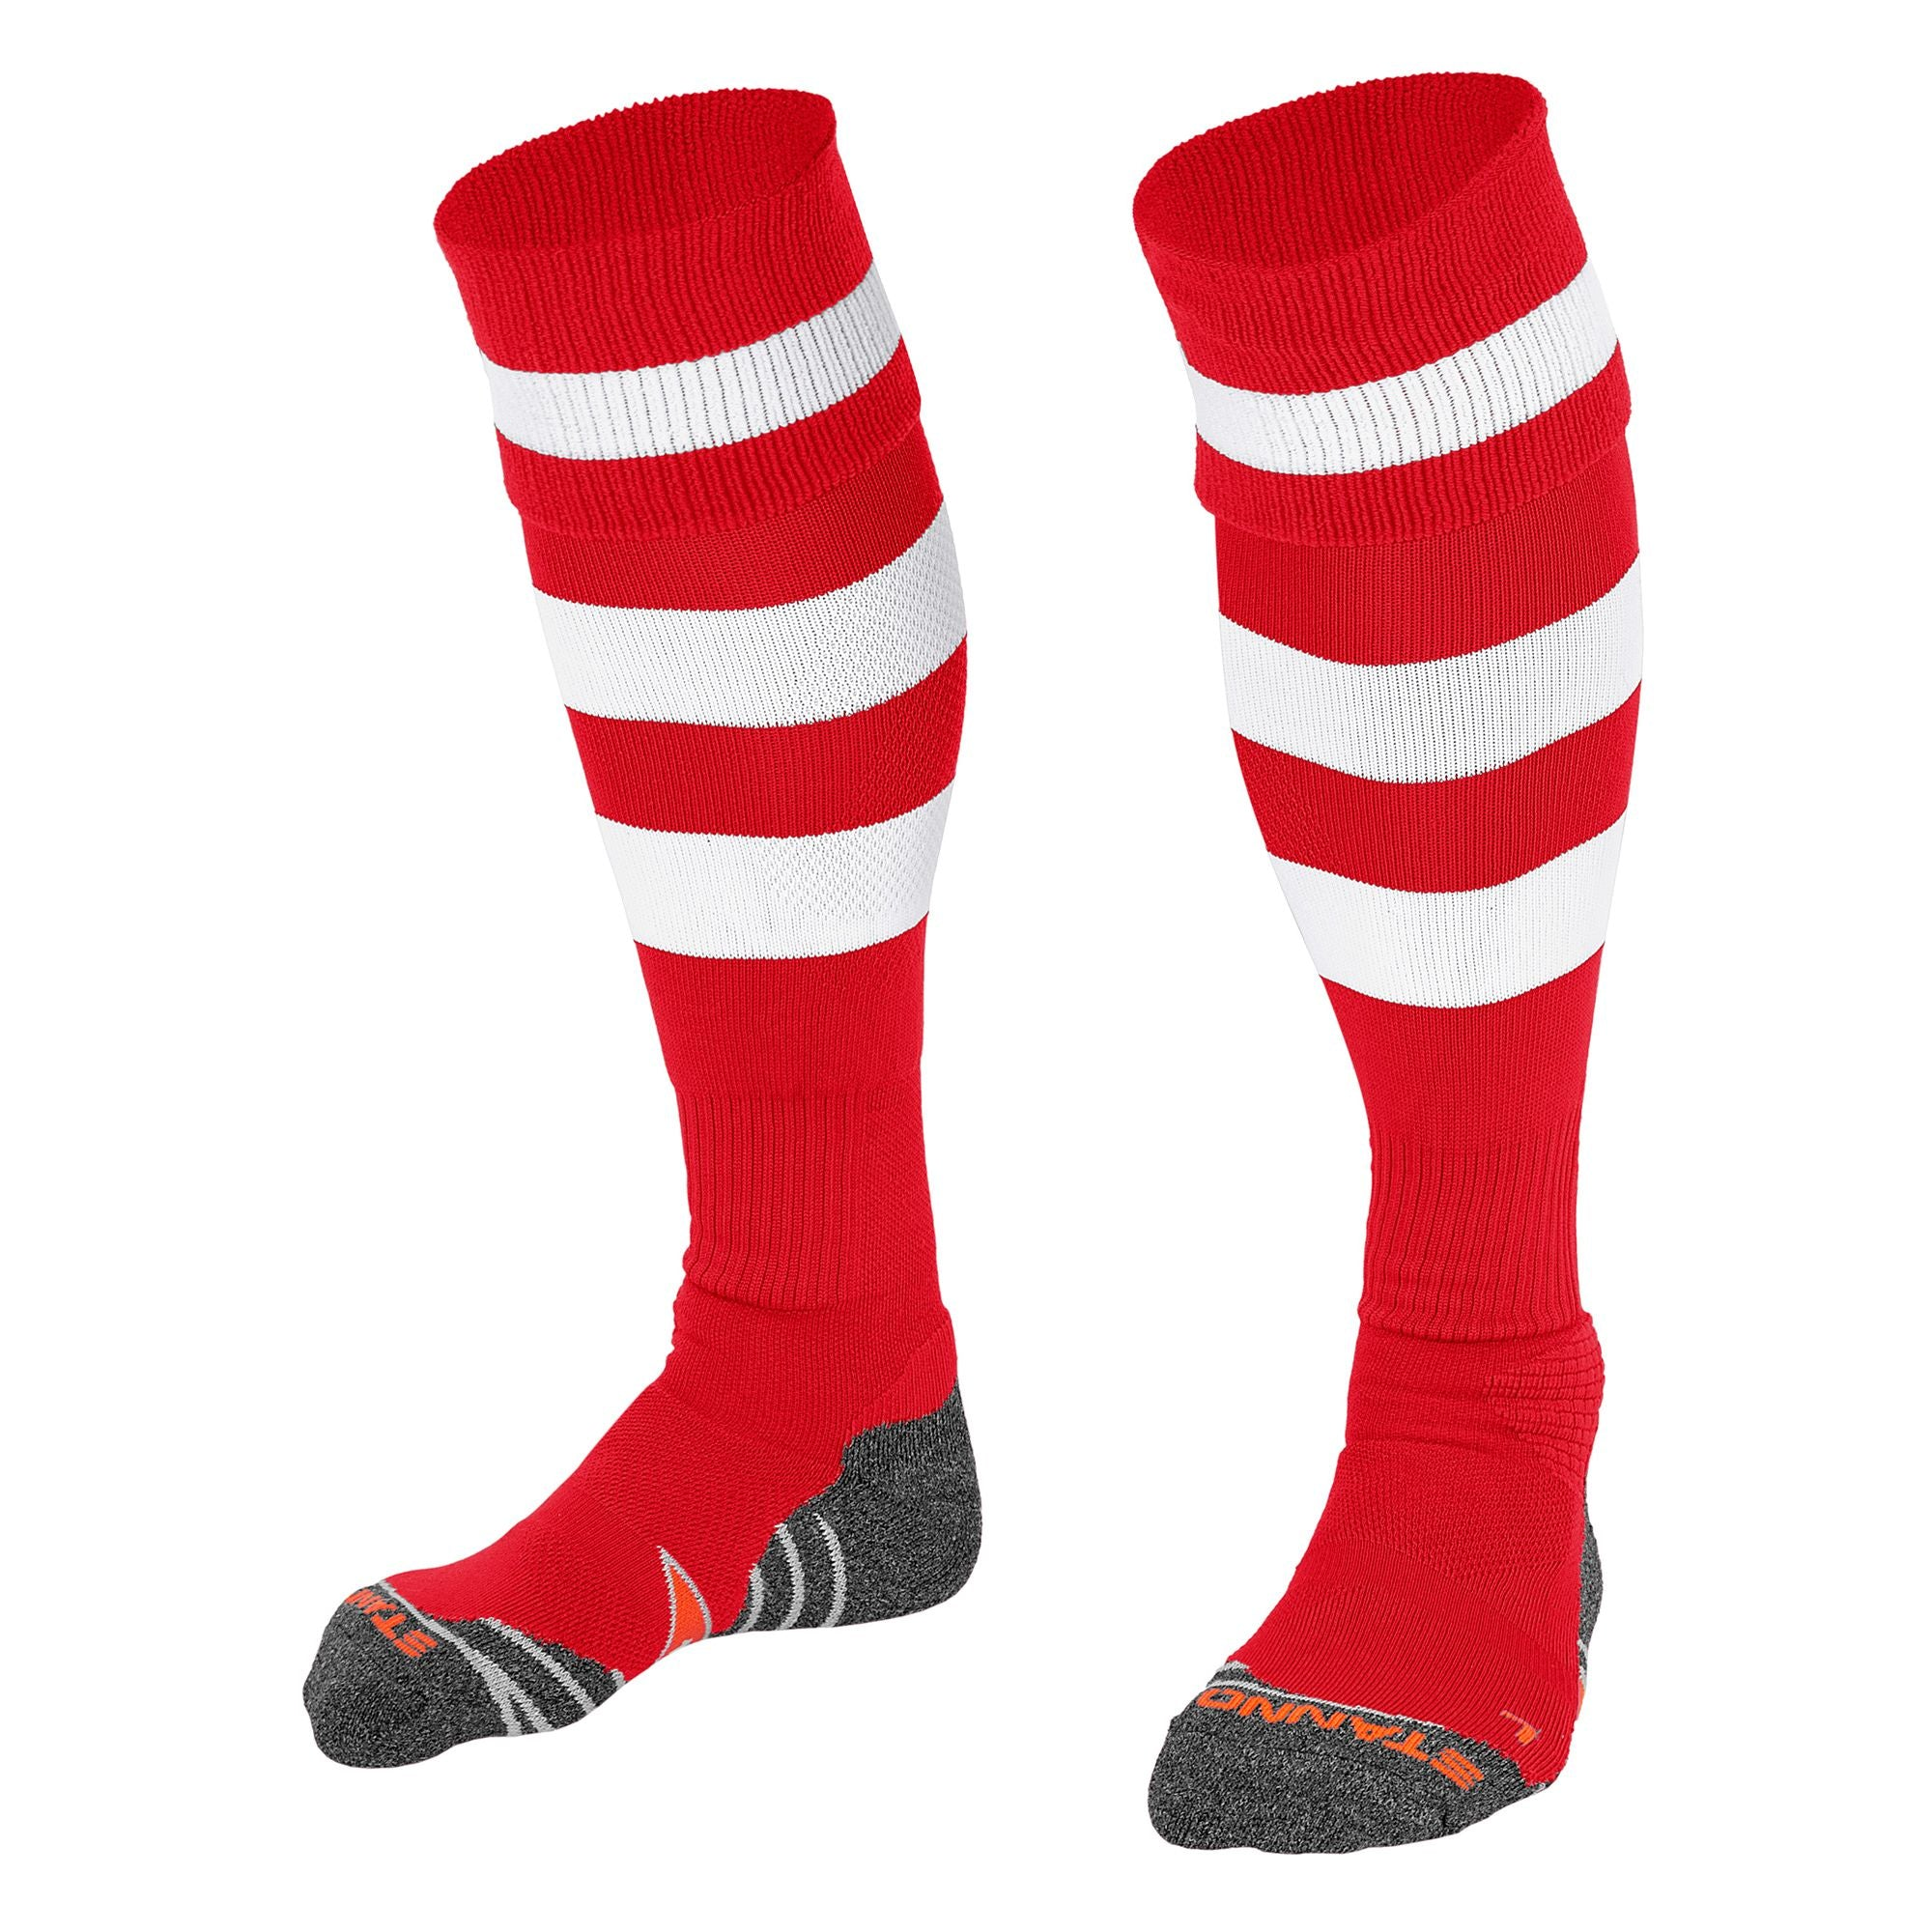 Stanno Original sock in red with 2 thick horizontal white stripes through the centre of the sock and one on the turnover. d